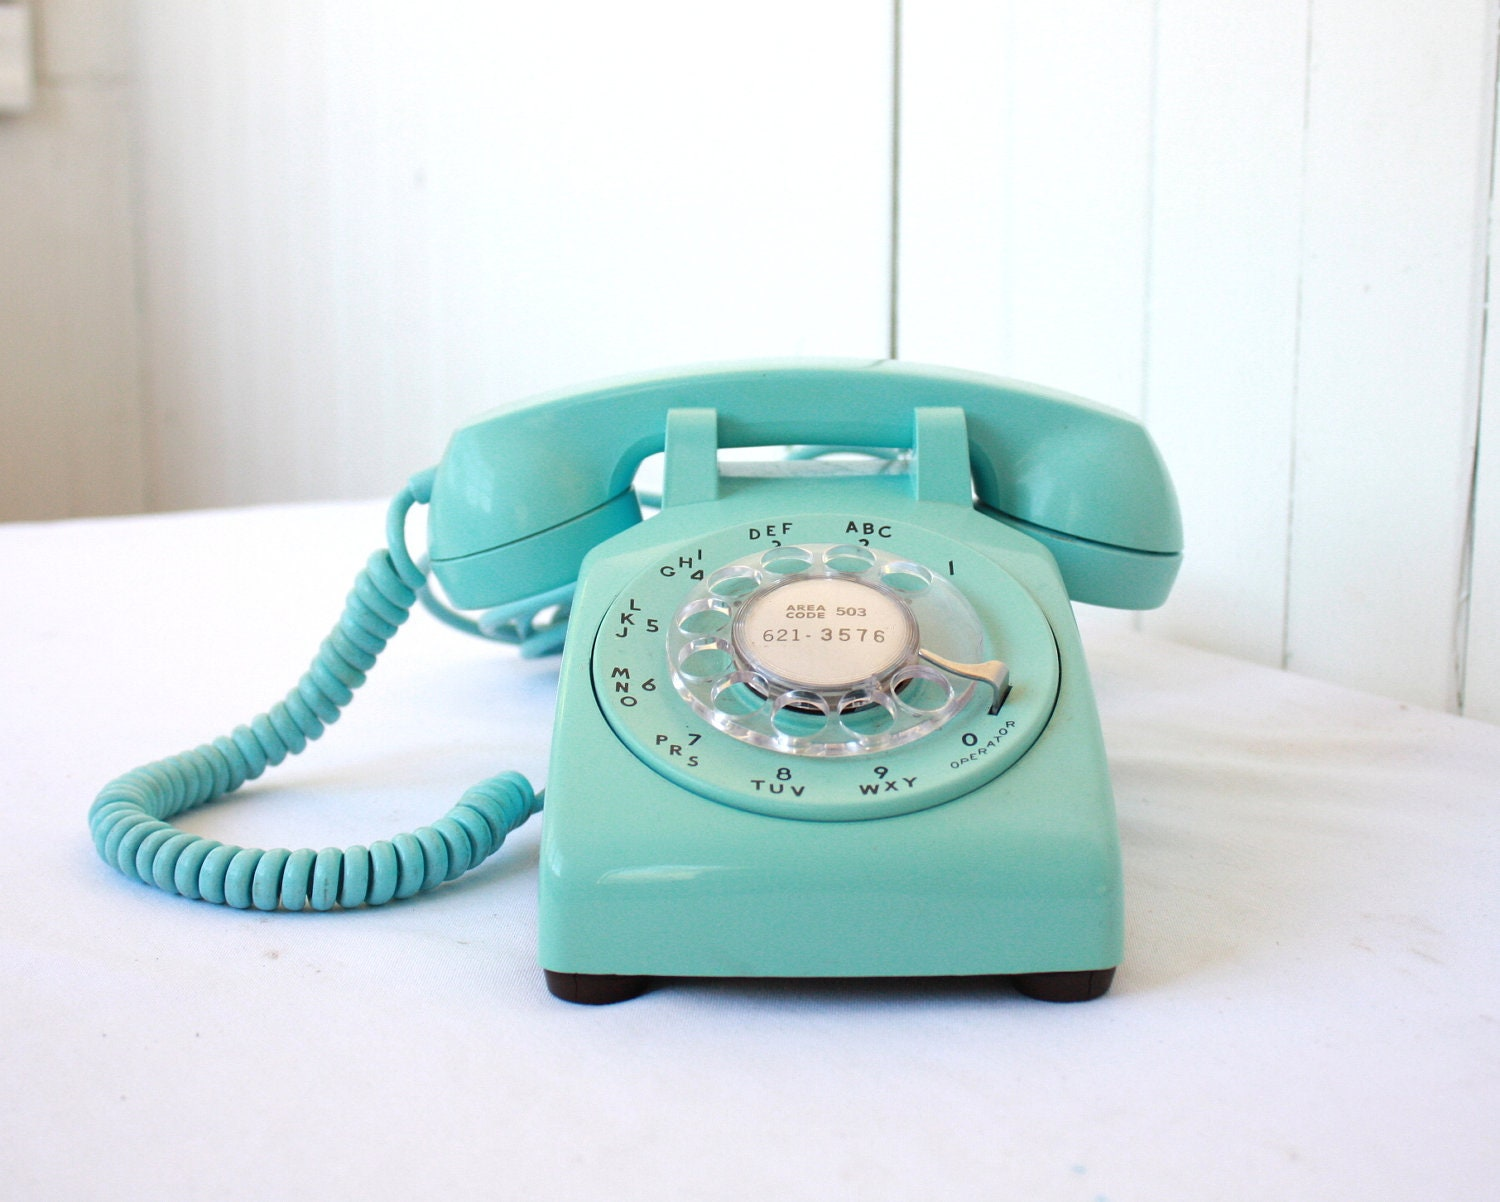 vintage phone vintage rotary phone turquoise phone rotary. Black Bedroom Furniture Sets. Home Design Ideas